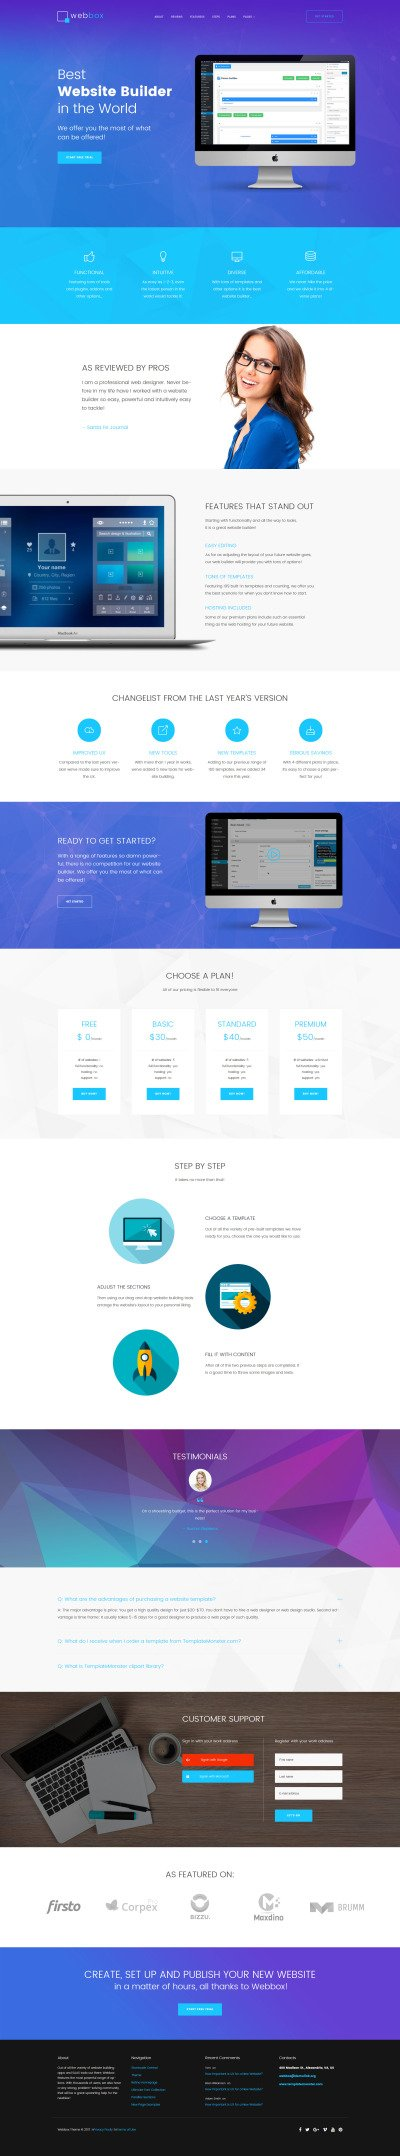 Webbox - One Page Product Landing